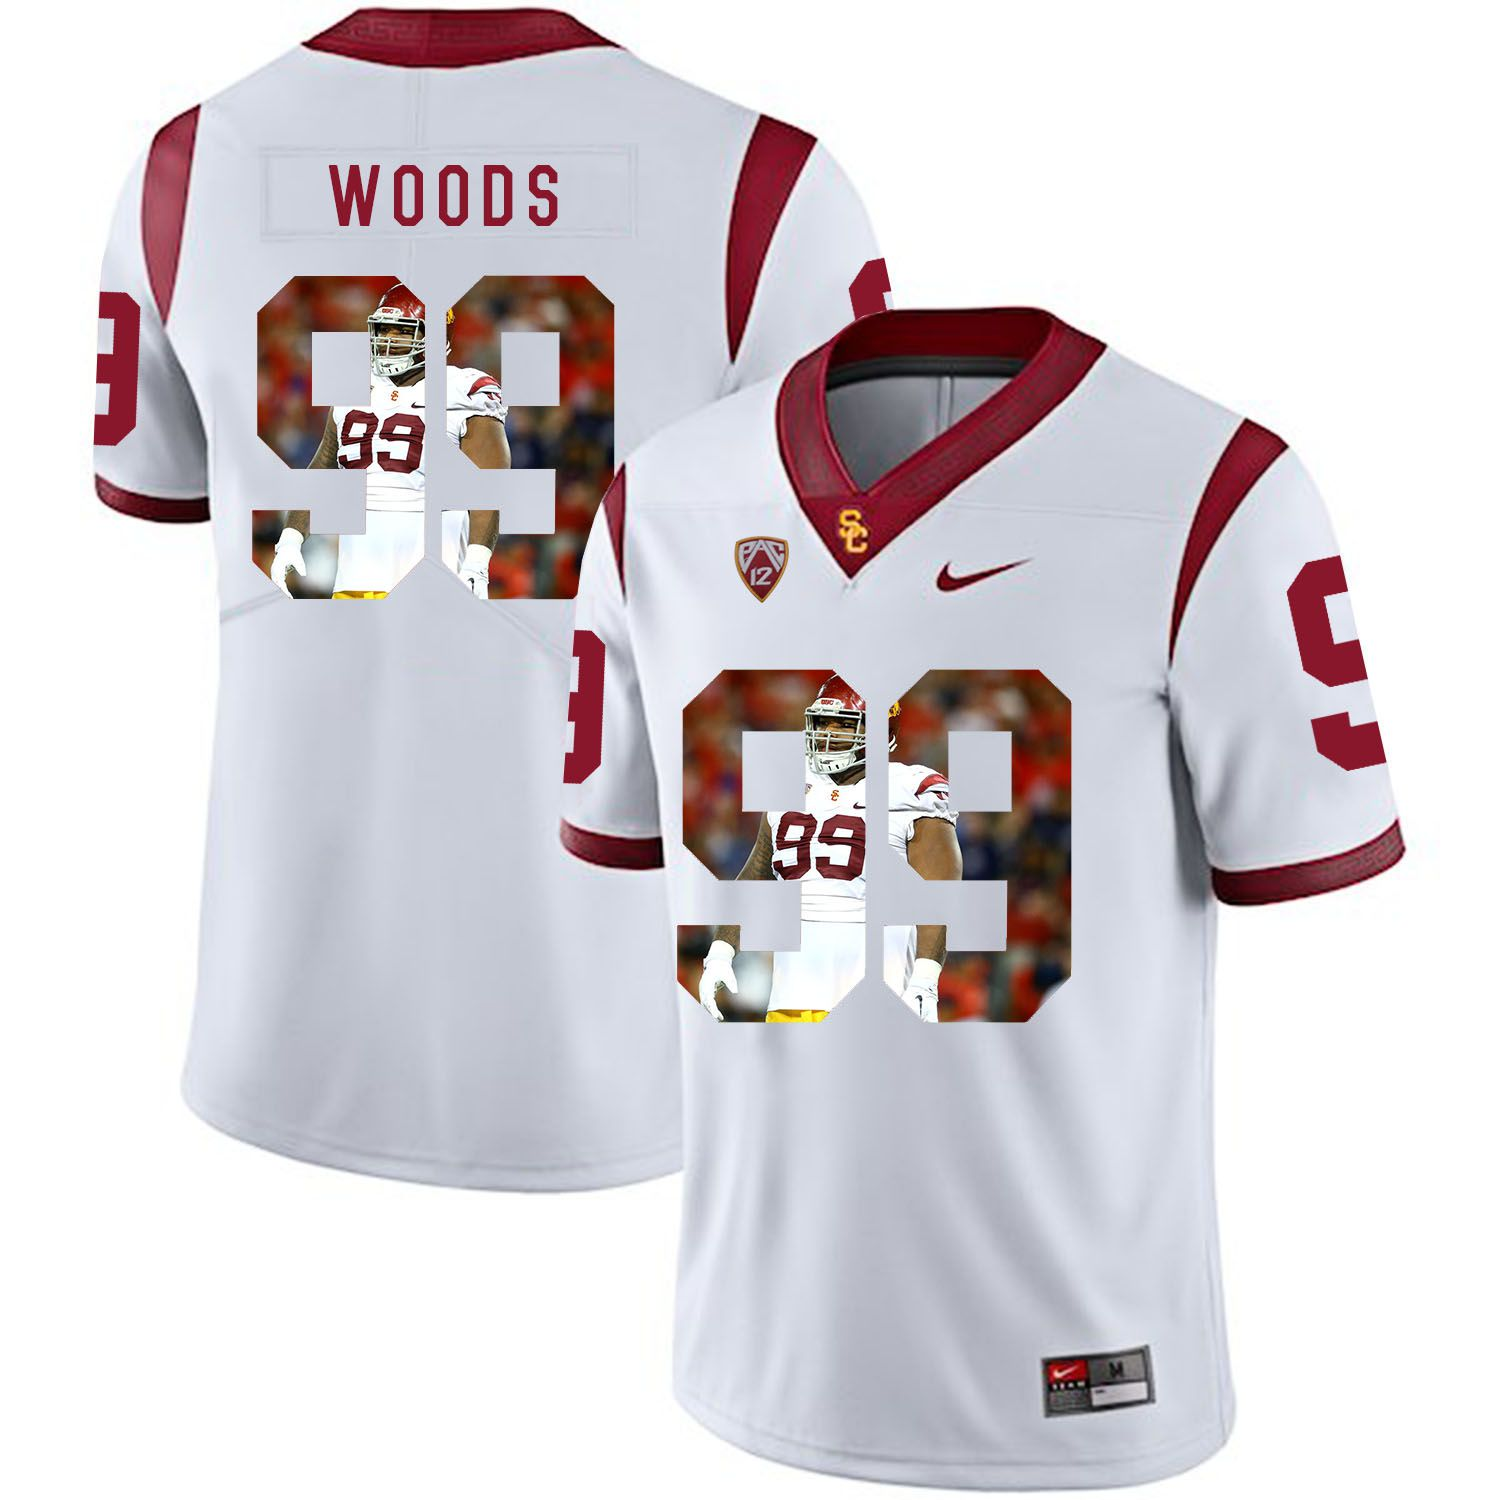 Men USC Trojans 99 Woods White Fashion Edition Customized NCAA Jerseys